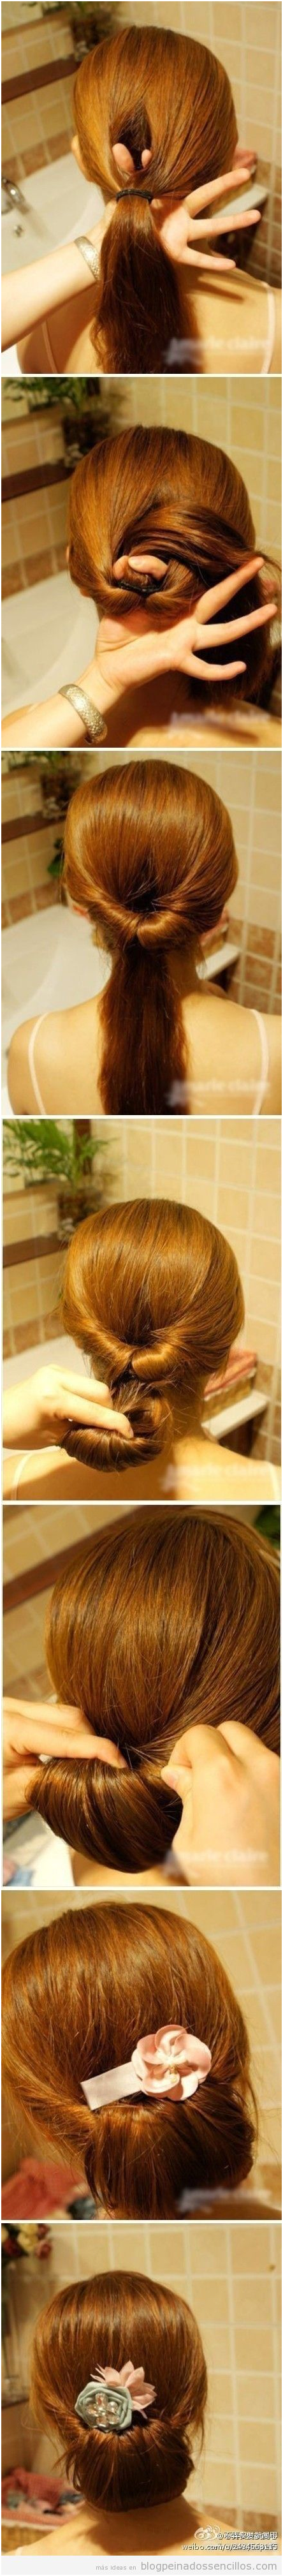 twice-twisted-chignon